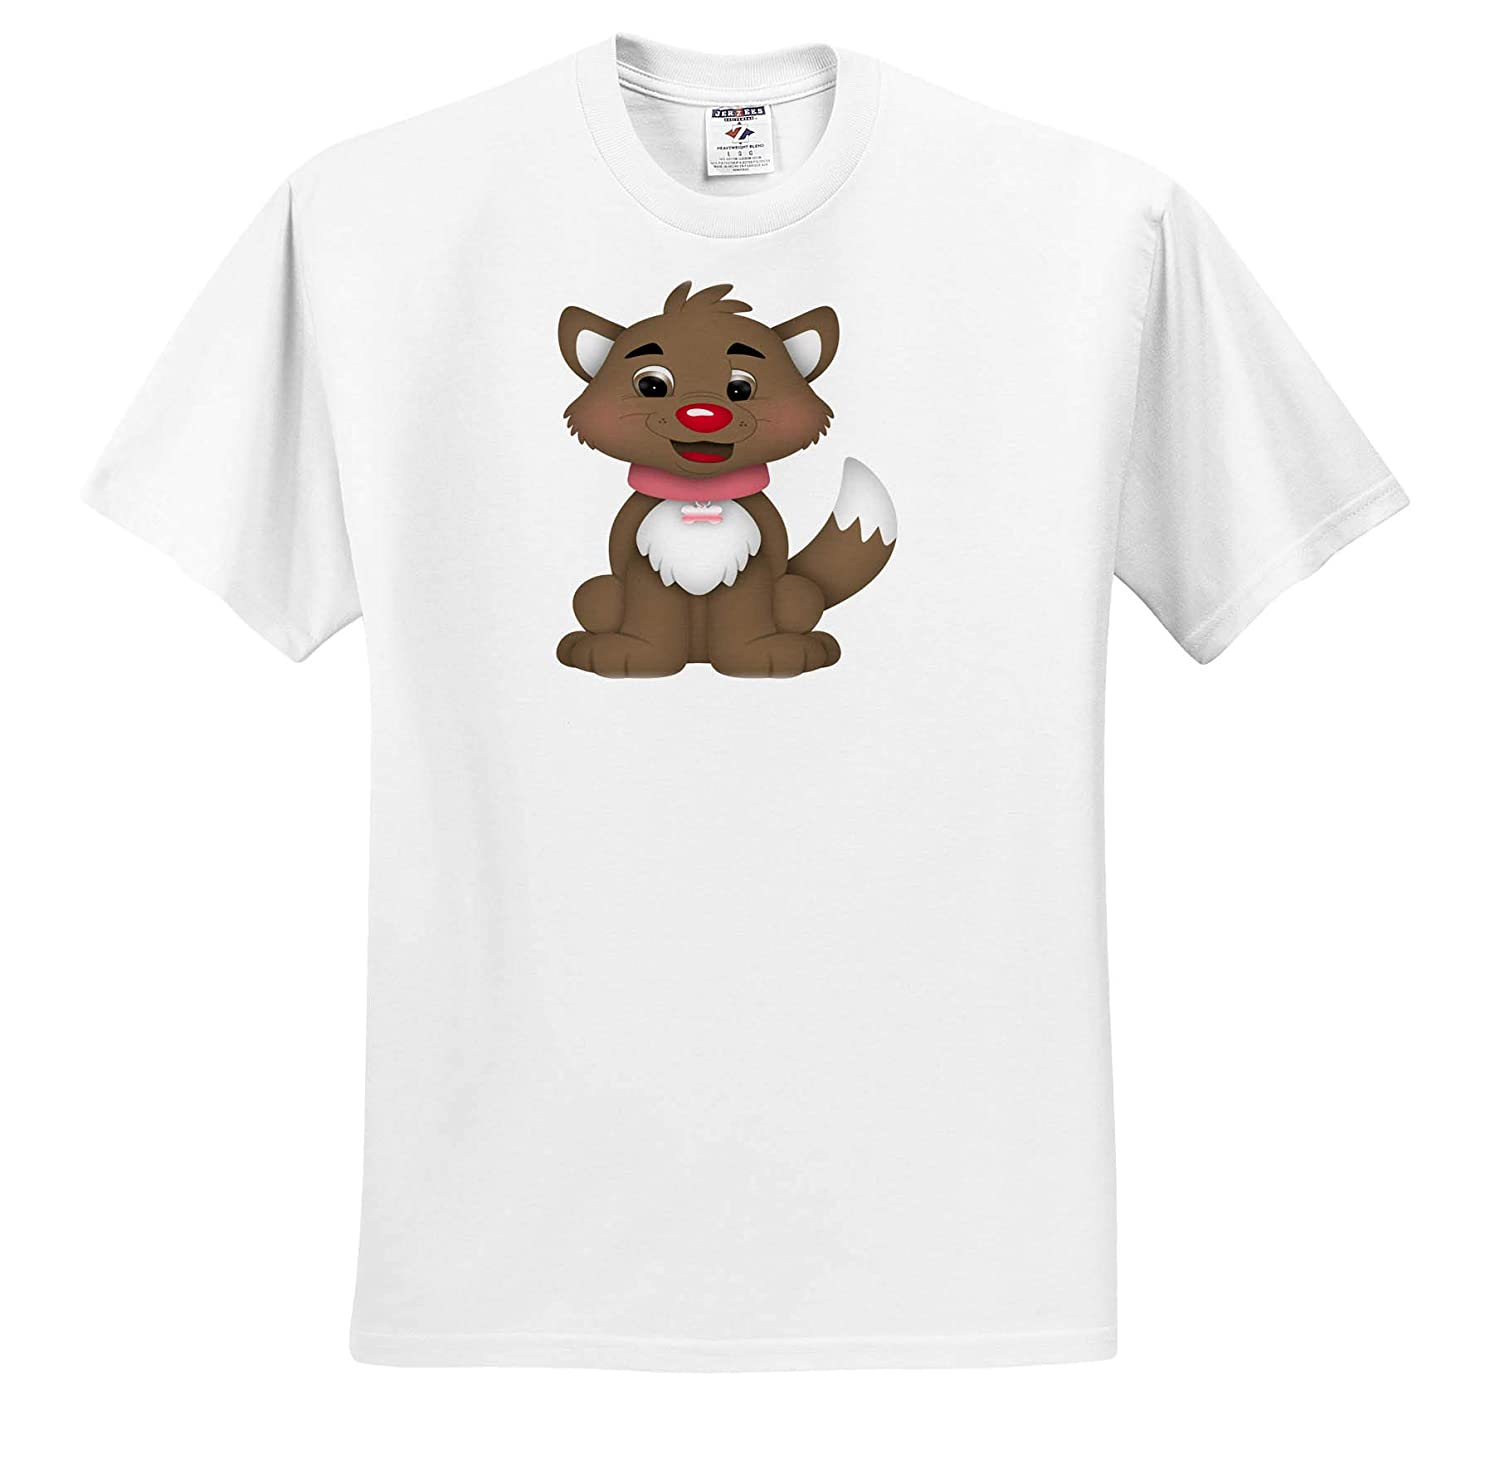 Cute Brown Dog with A Pink Collar Illustration 3dRose Anne Marie Baugh Adult T-Shirt XL Illustrations ts/_318016